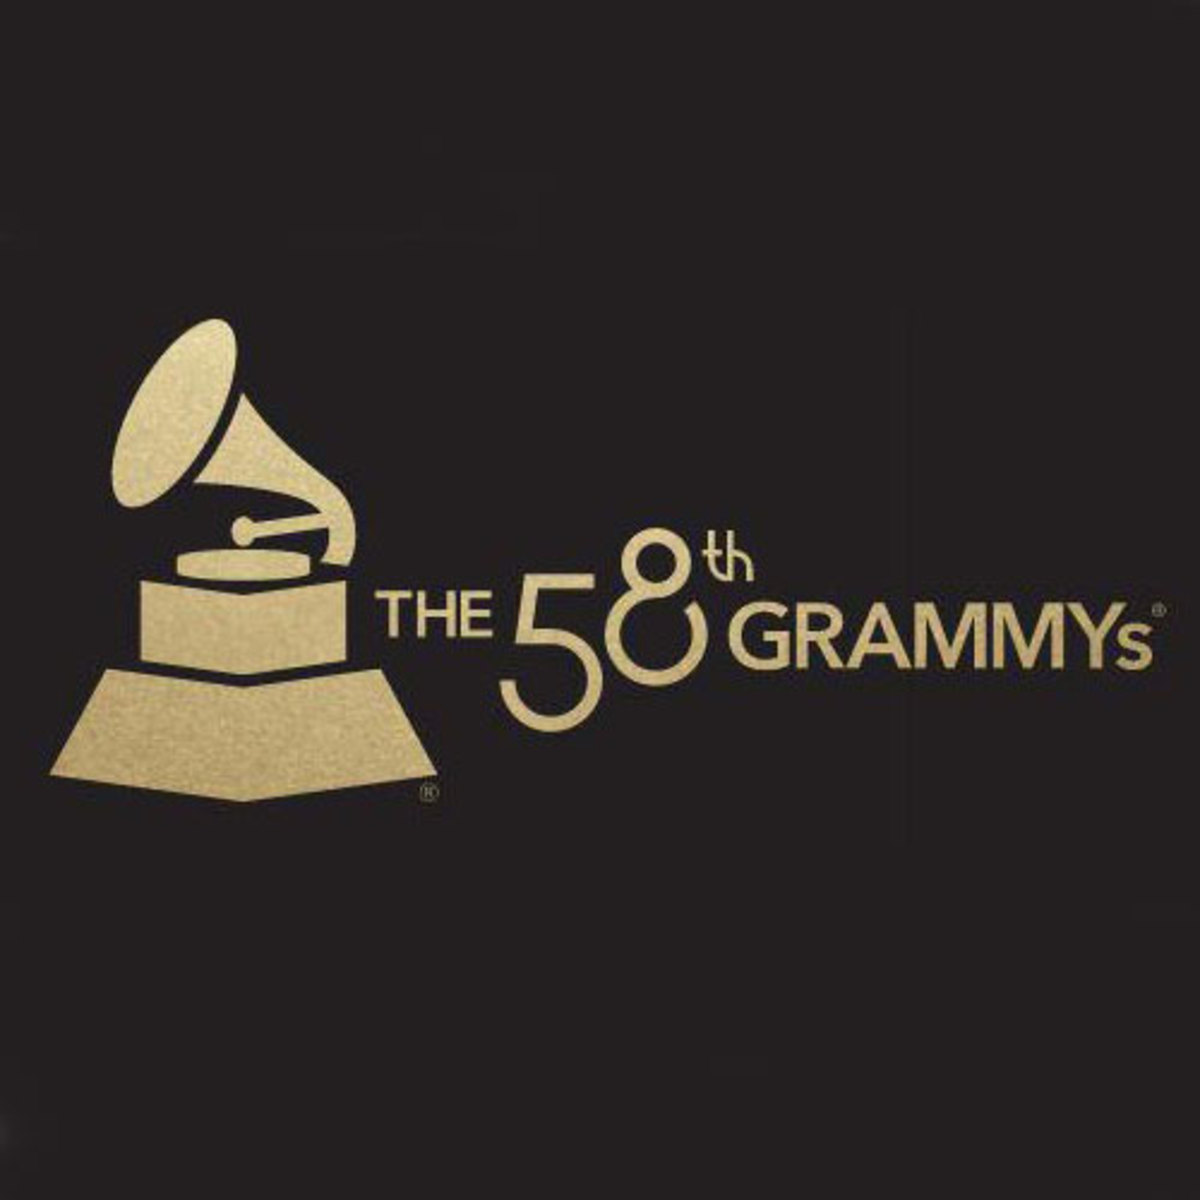 58th-grammys-live.jpg